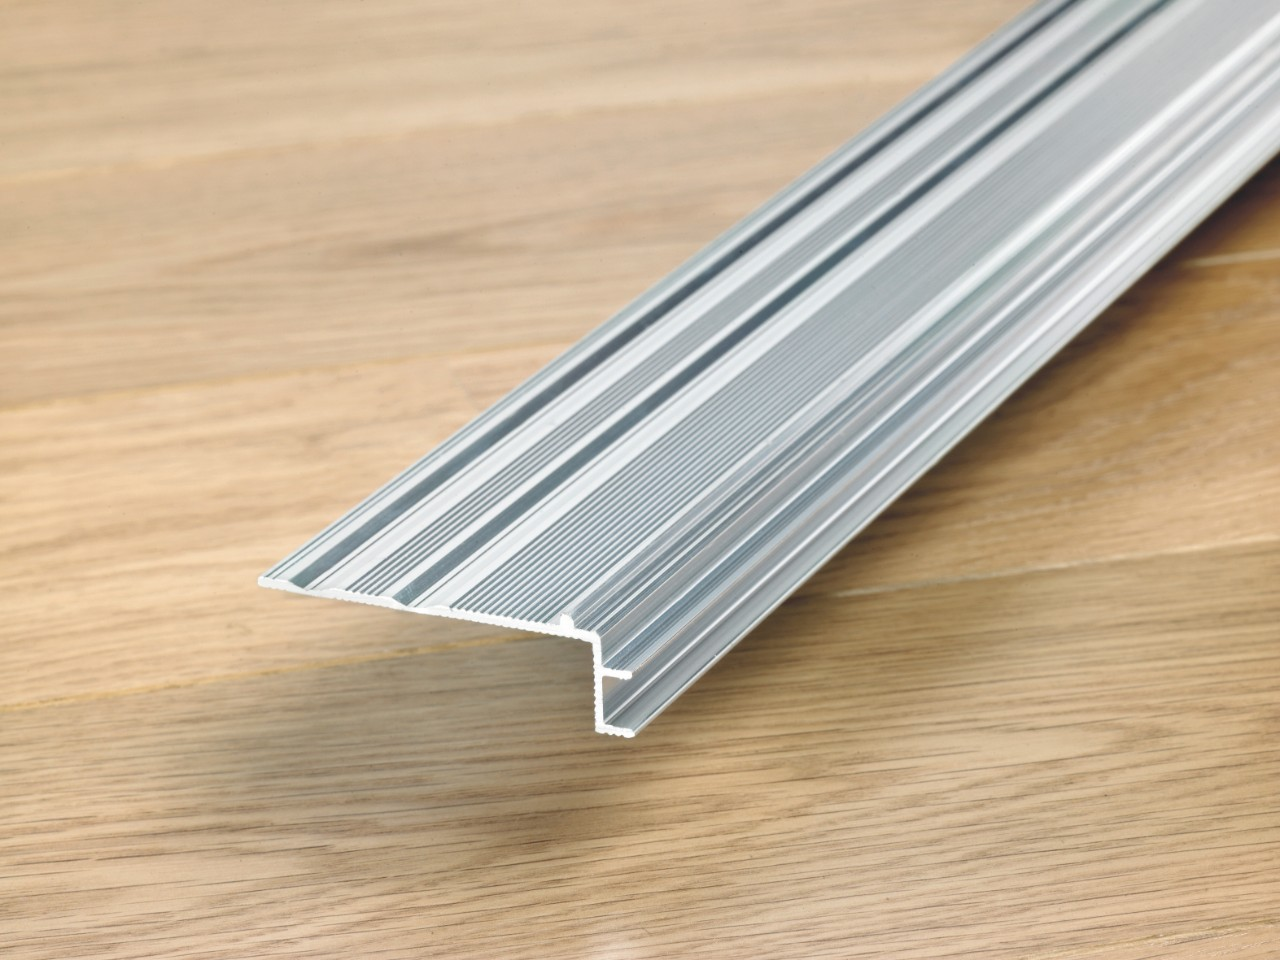 NEINCPBASE Laminate Accessories Incizo Aluminium Subprofile For Stairs NEINCPBASE5